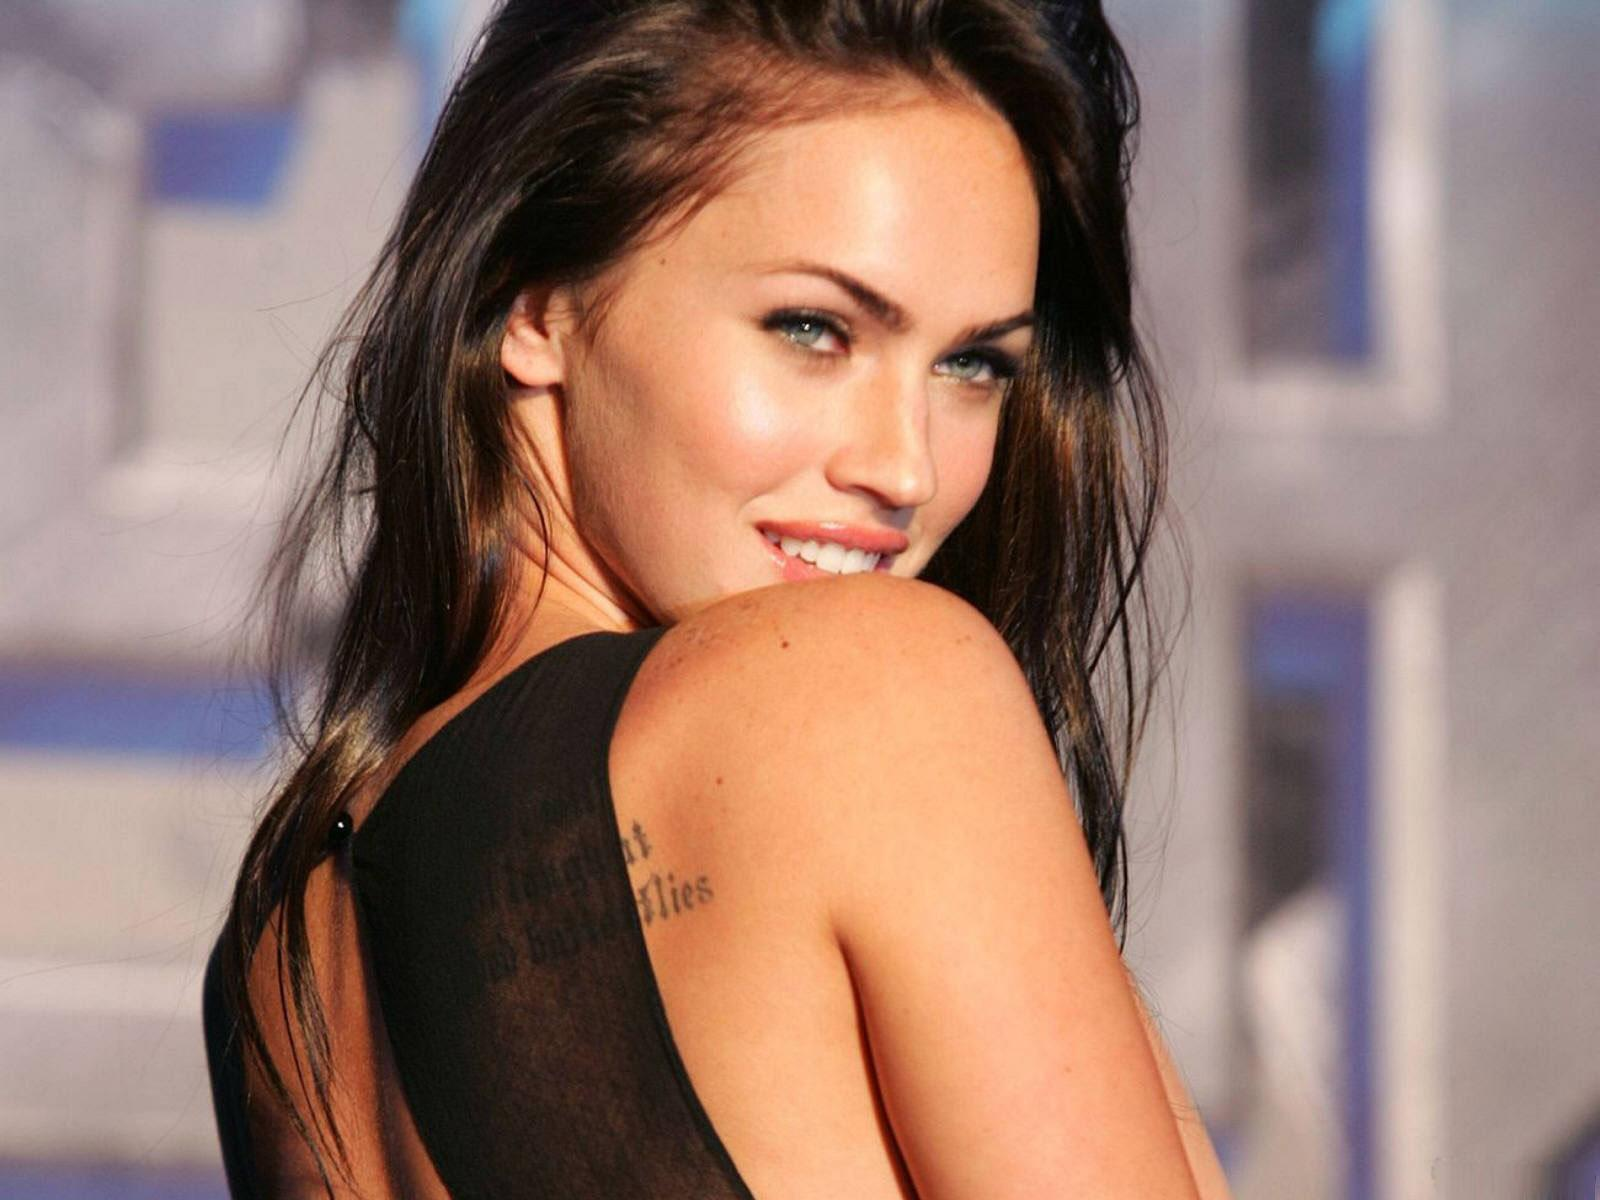 http://4.bp.blogspot.com/-_mzvU3DjQ08/TyVRzxd07GI/AAAAAAAACp0/SoME5VKr7G0/s1600/Megan-fox-Wallpapers-For-Desktop-5.jpg